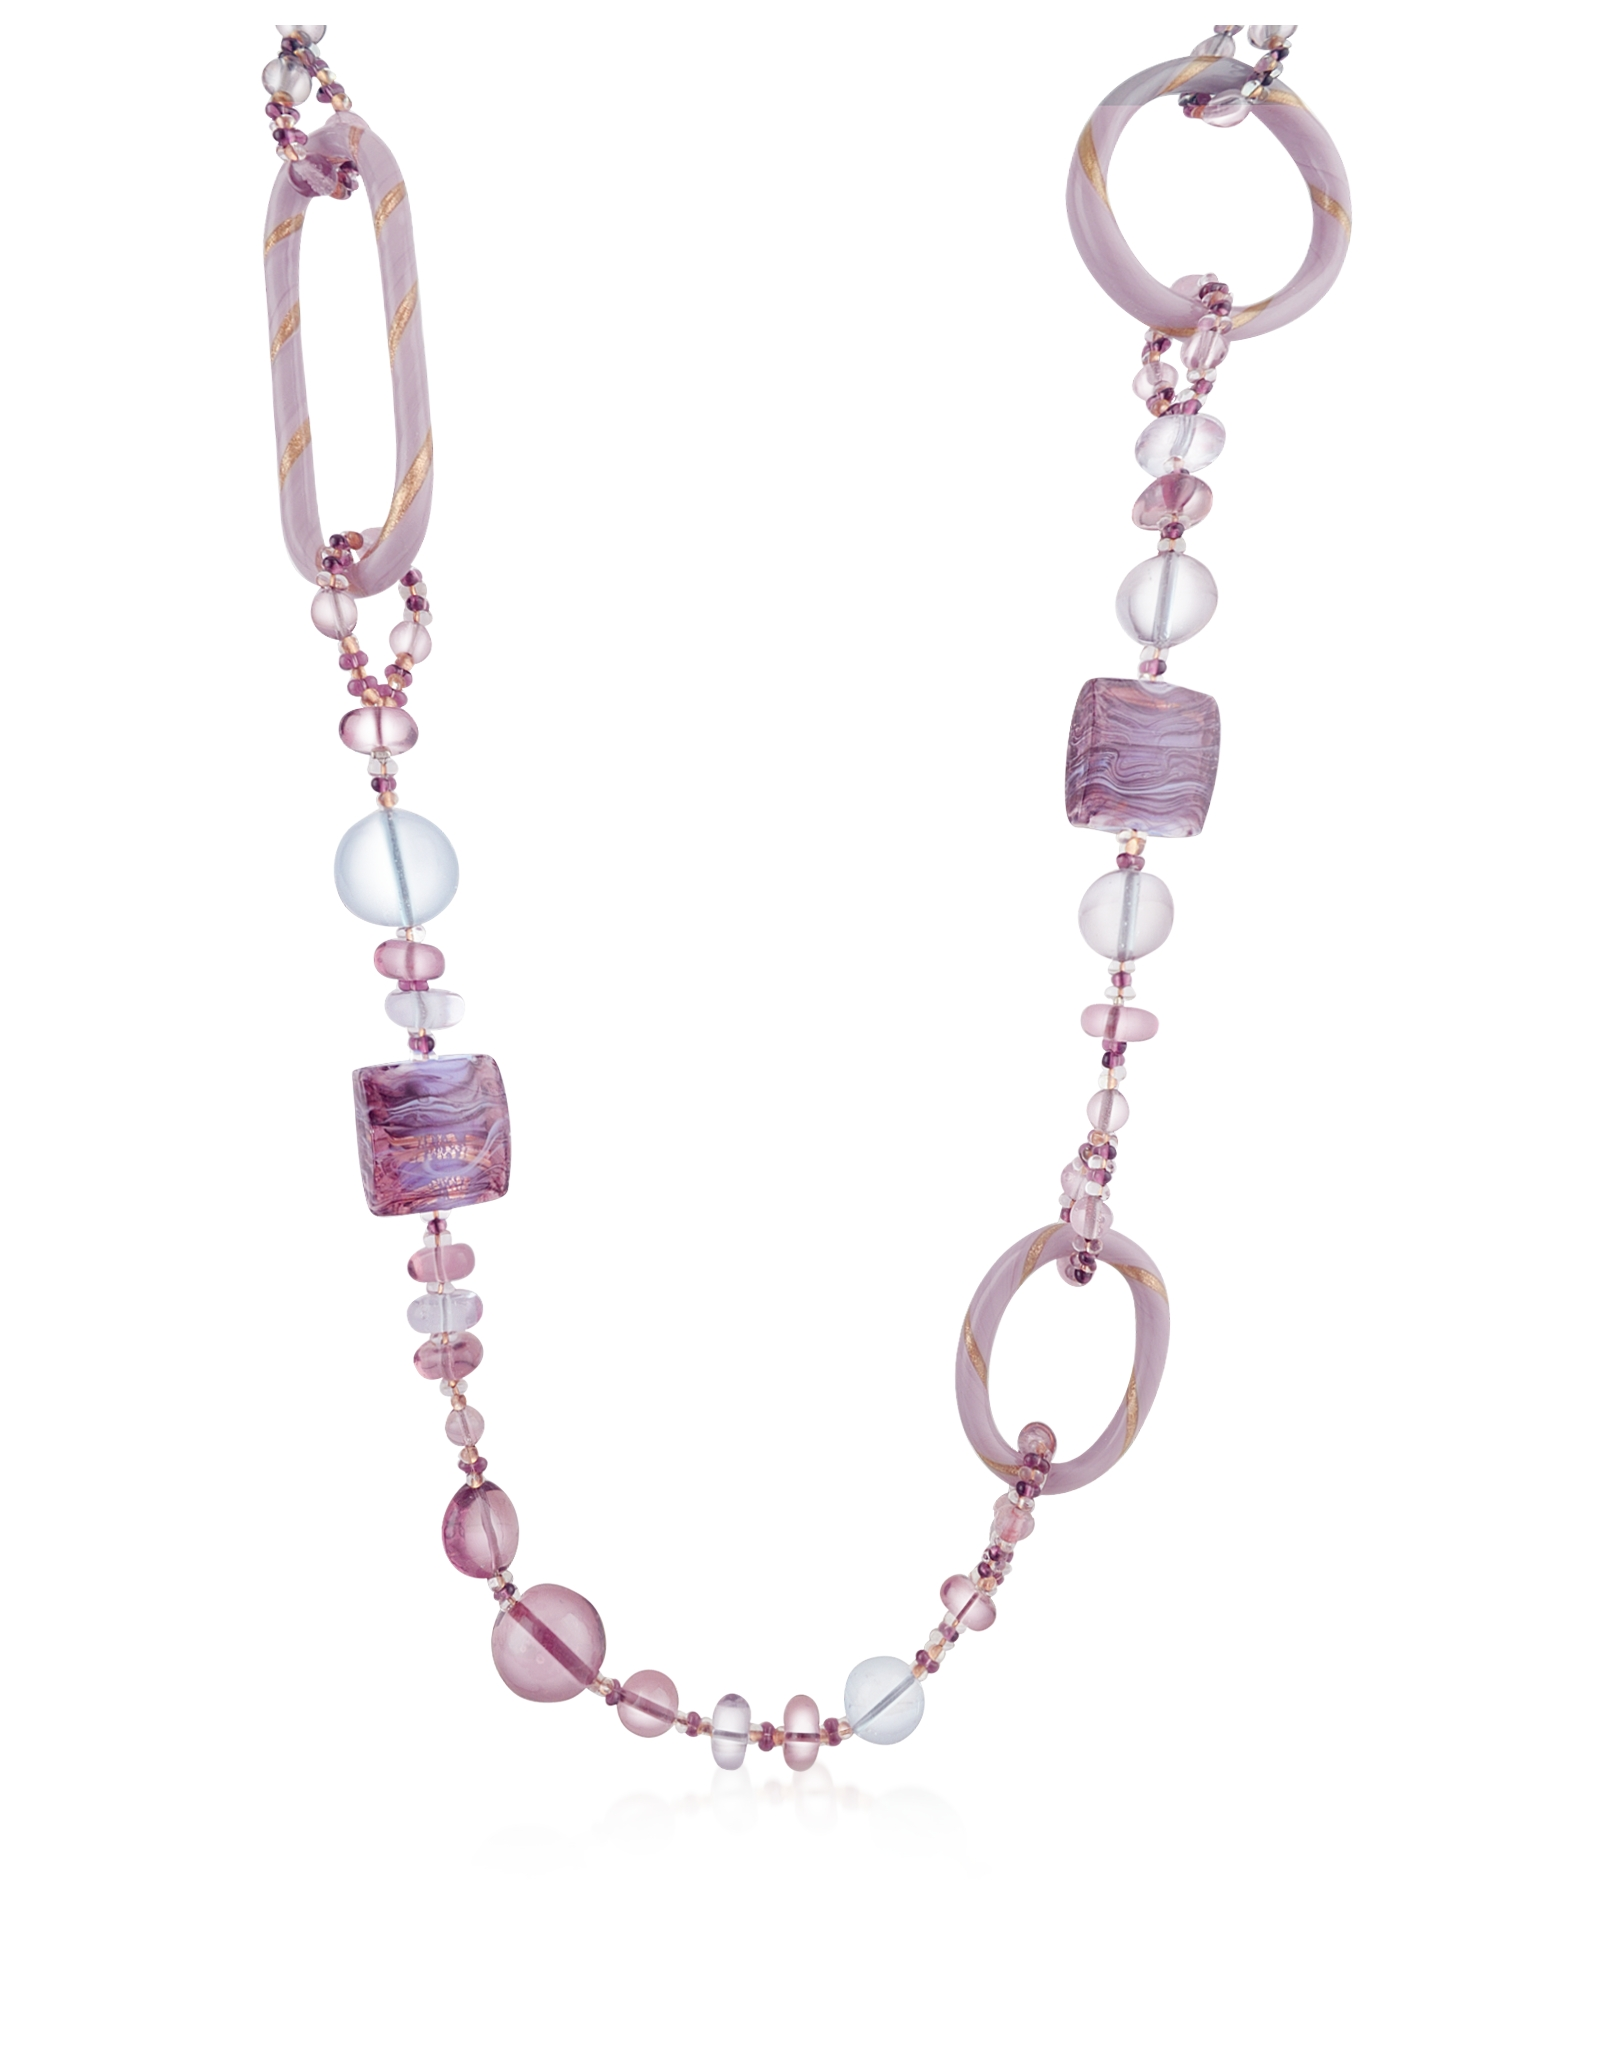 Lyst antica murrina bolero murano glass long necklace in pink gallery mozeypictures Choice Image